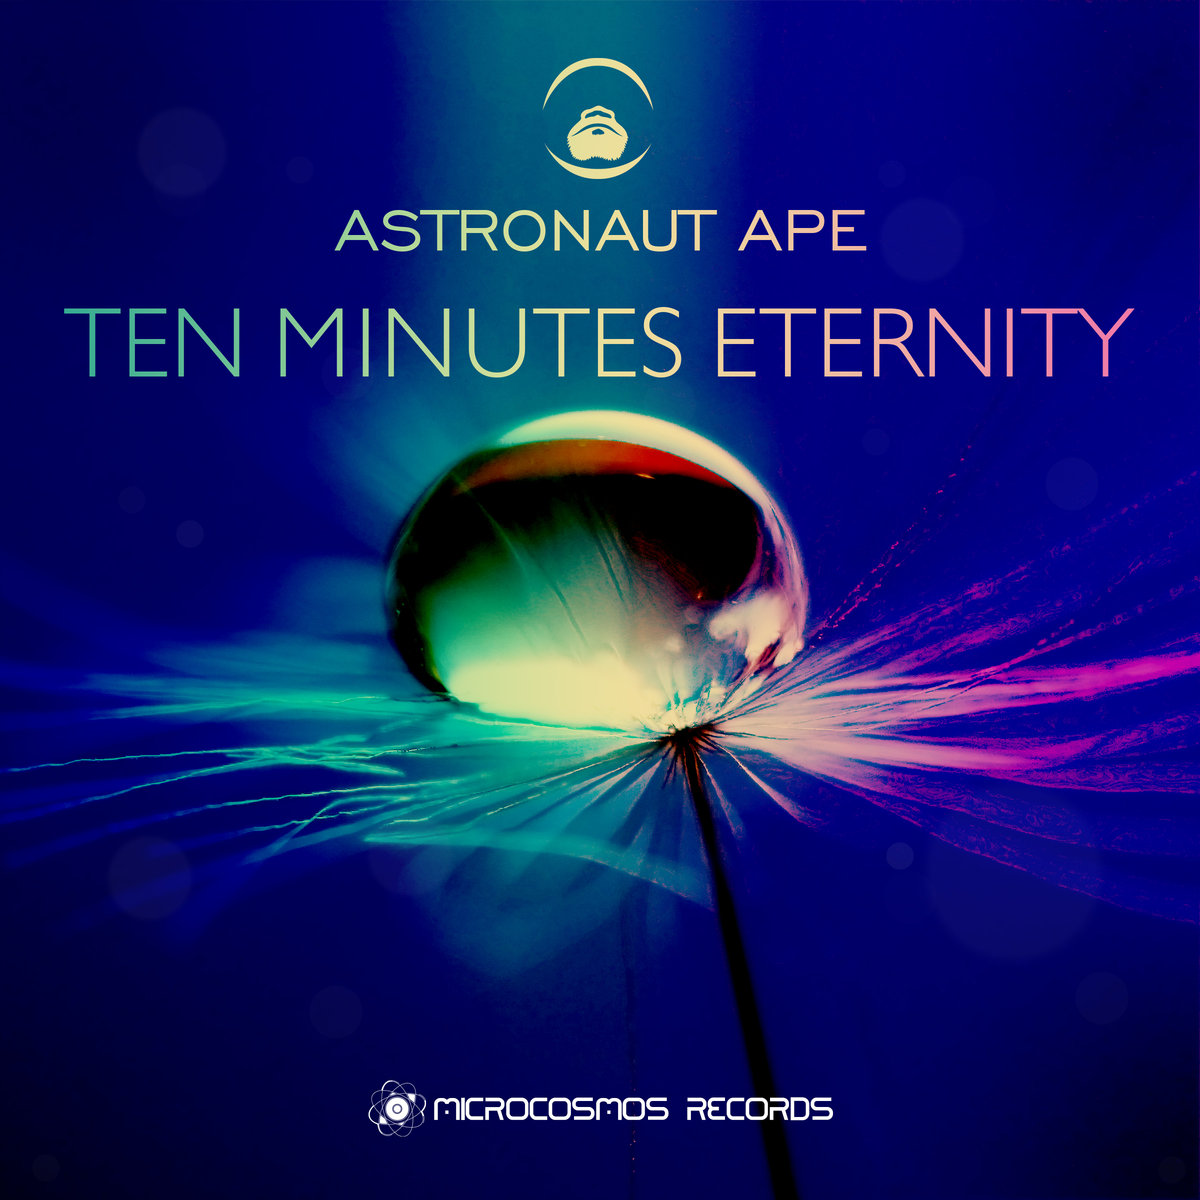 Astronaut Ape - Dreams @ 'Ten Minutes Eternity' album (ambient, chill-out)